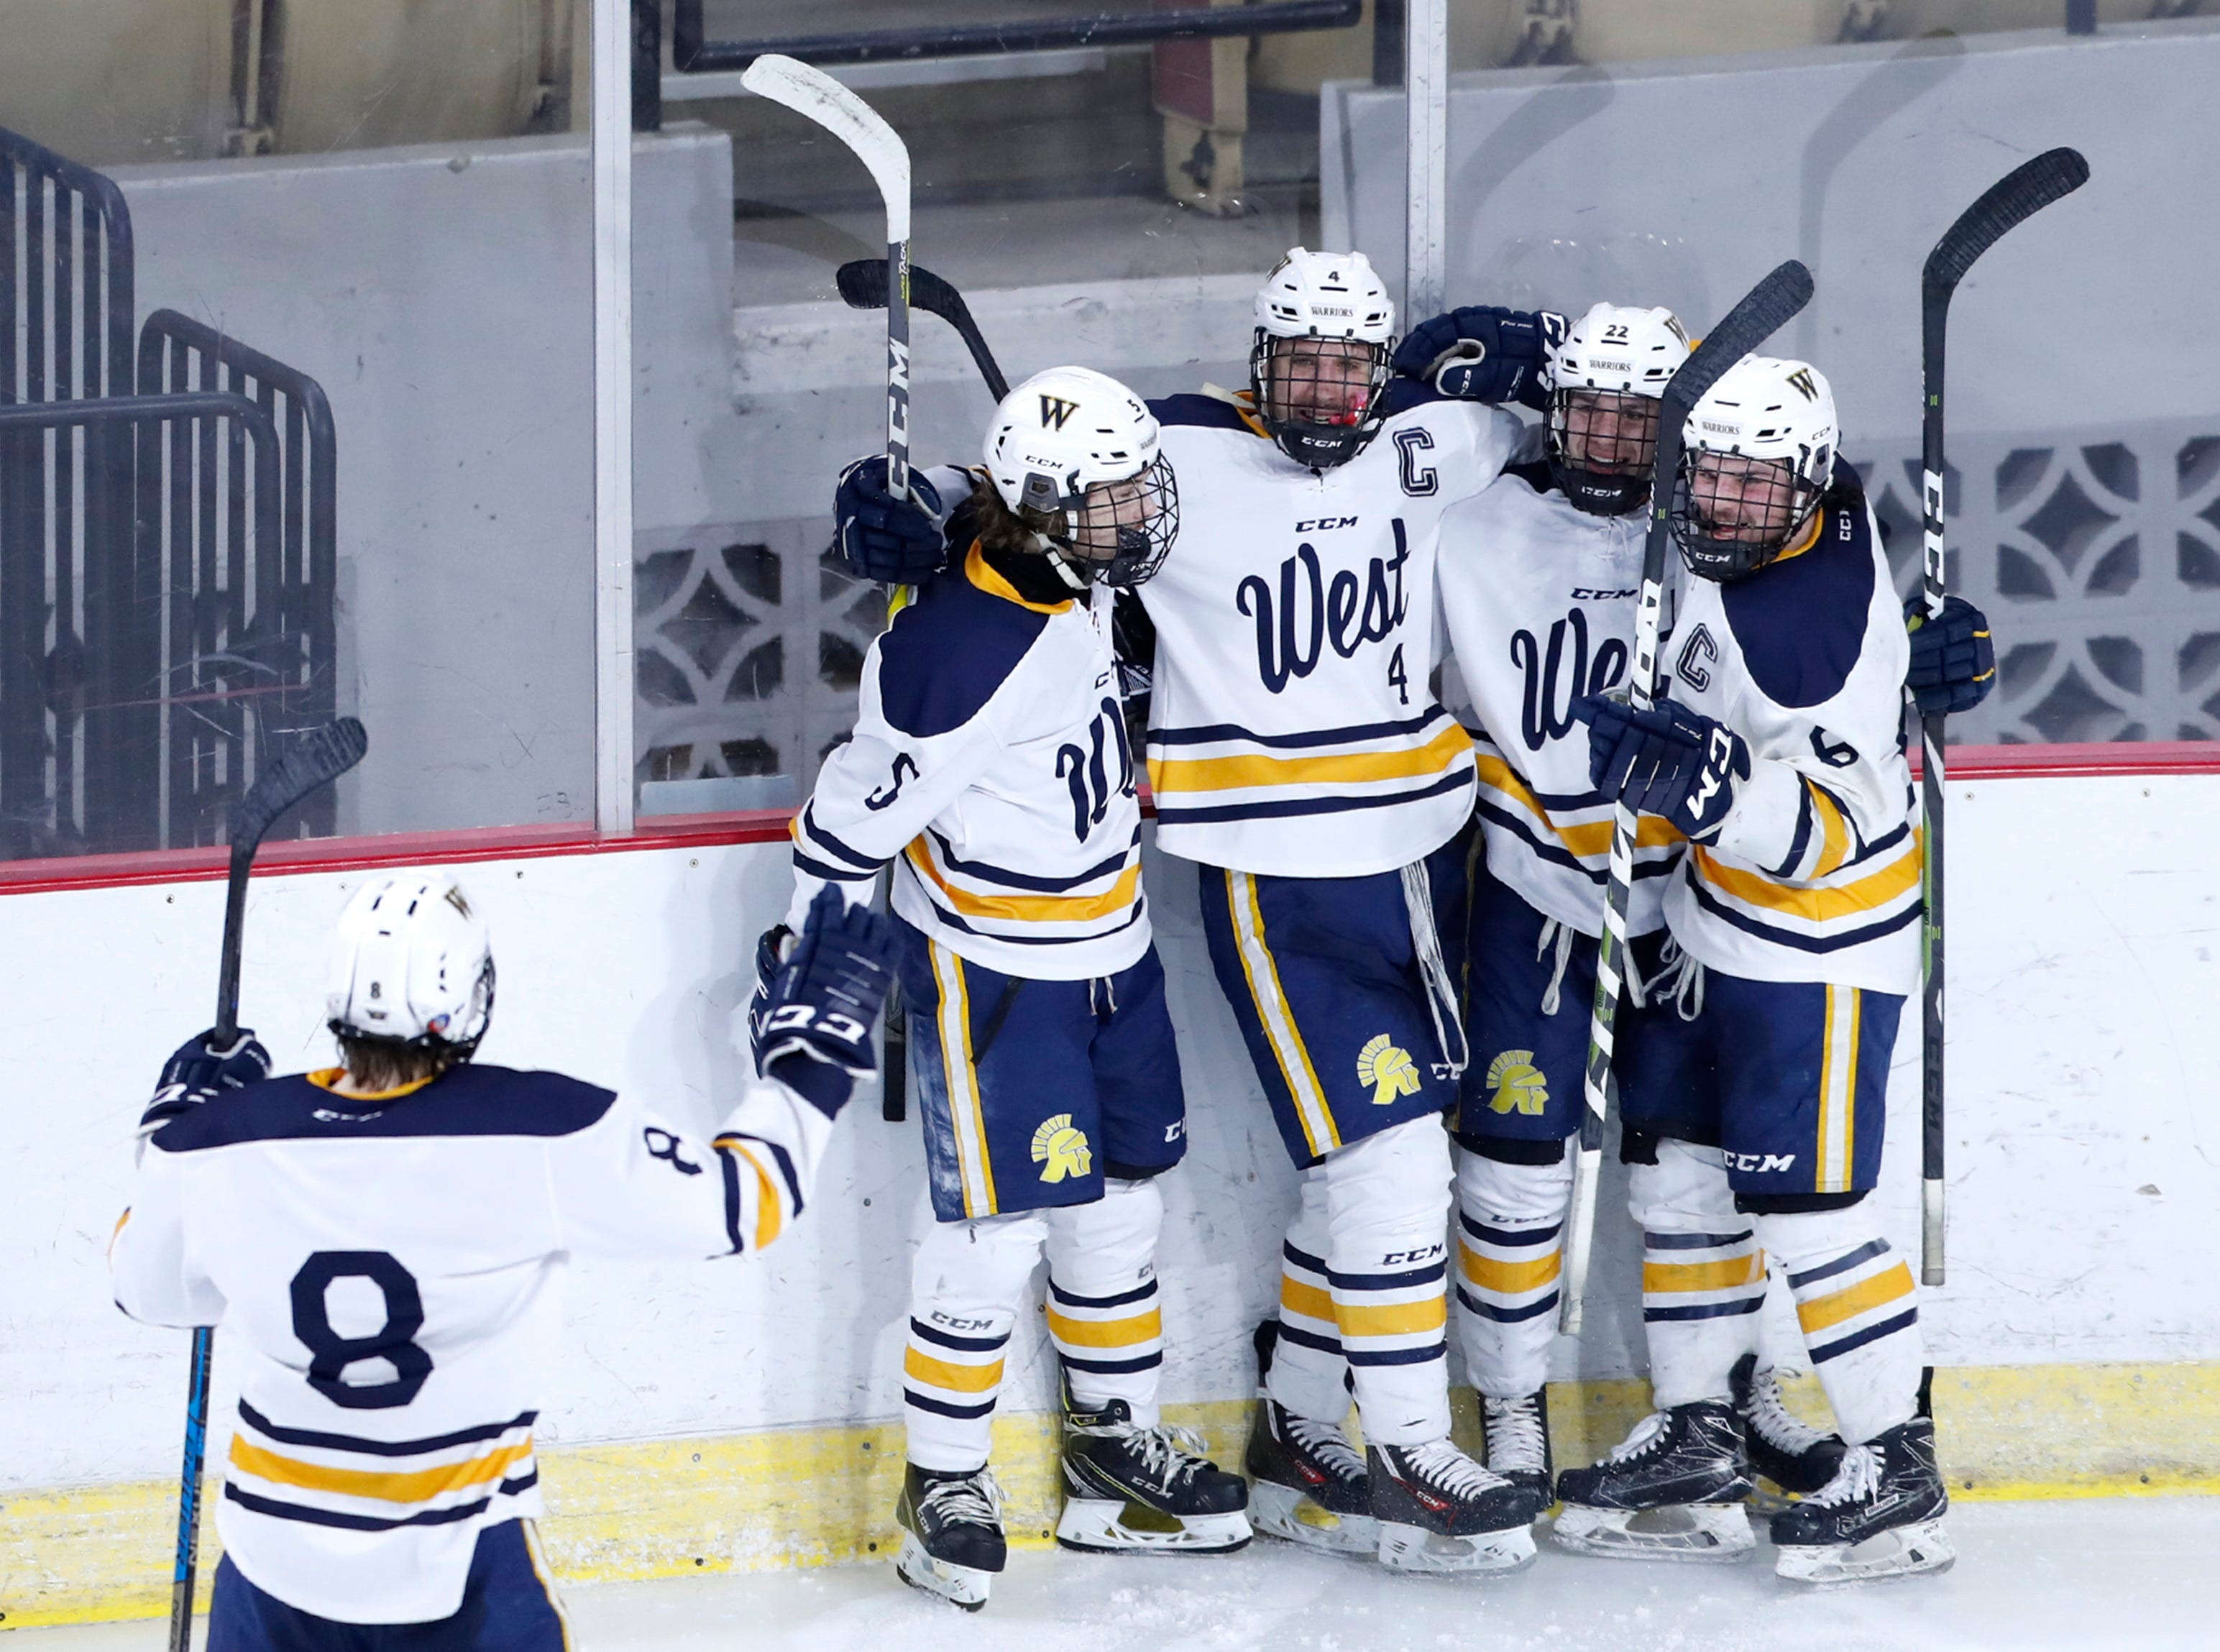 Wausau WestÕs Connor Healy goes to celebrate with teammates after a goal scored by Sam Techel against Waukesha North Co-op during the WIAA State Hockey Tournament quarterfinals Thursday, Feb. 28, 2019, at Veterans Memorial Coliseum in Madison, Wis.